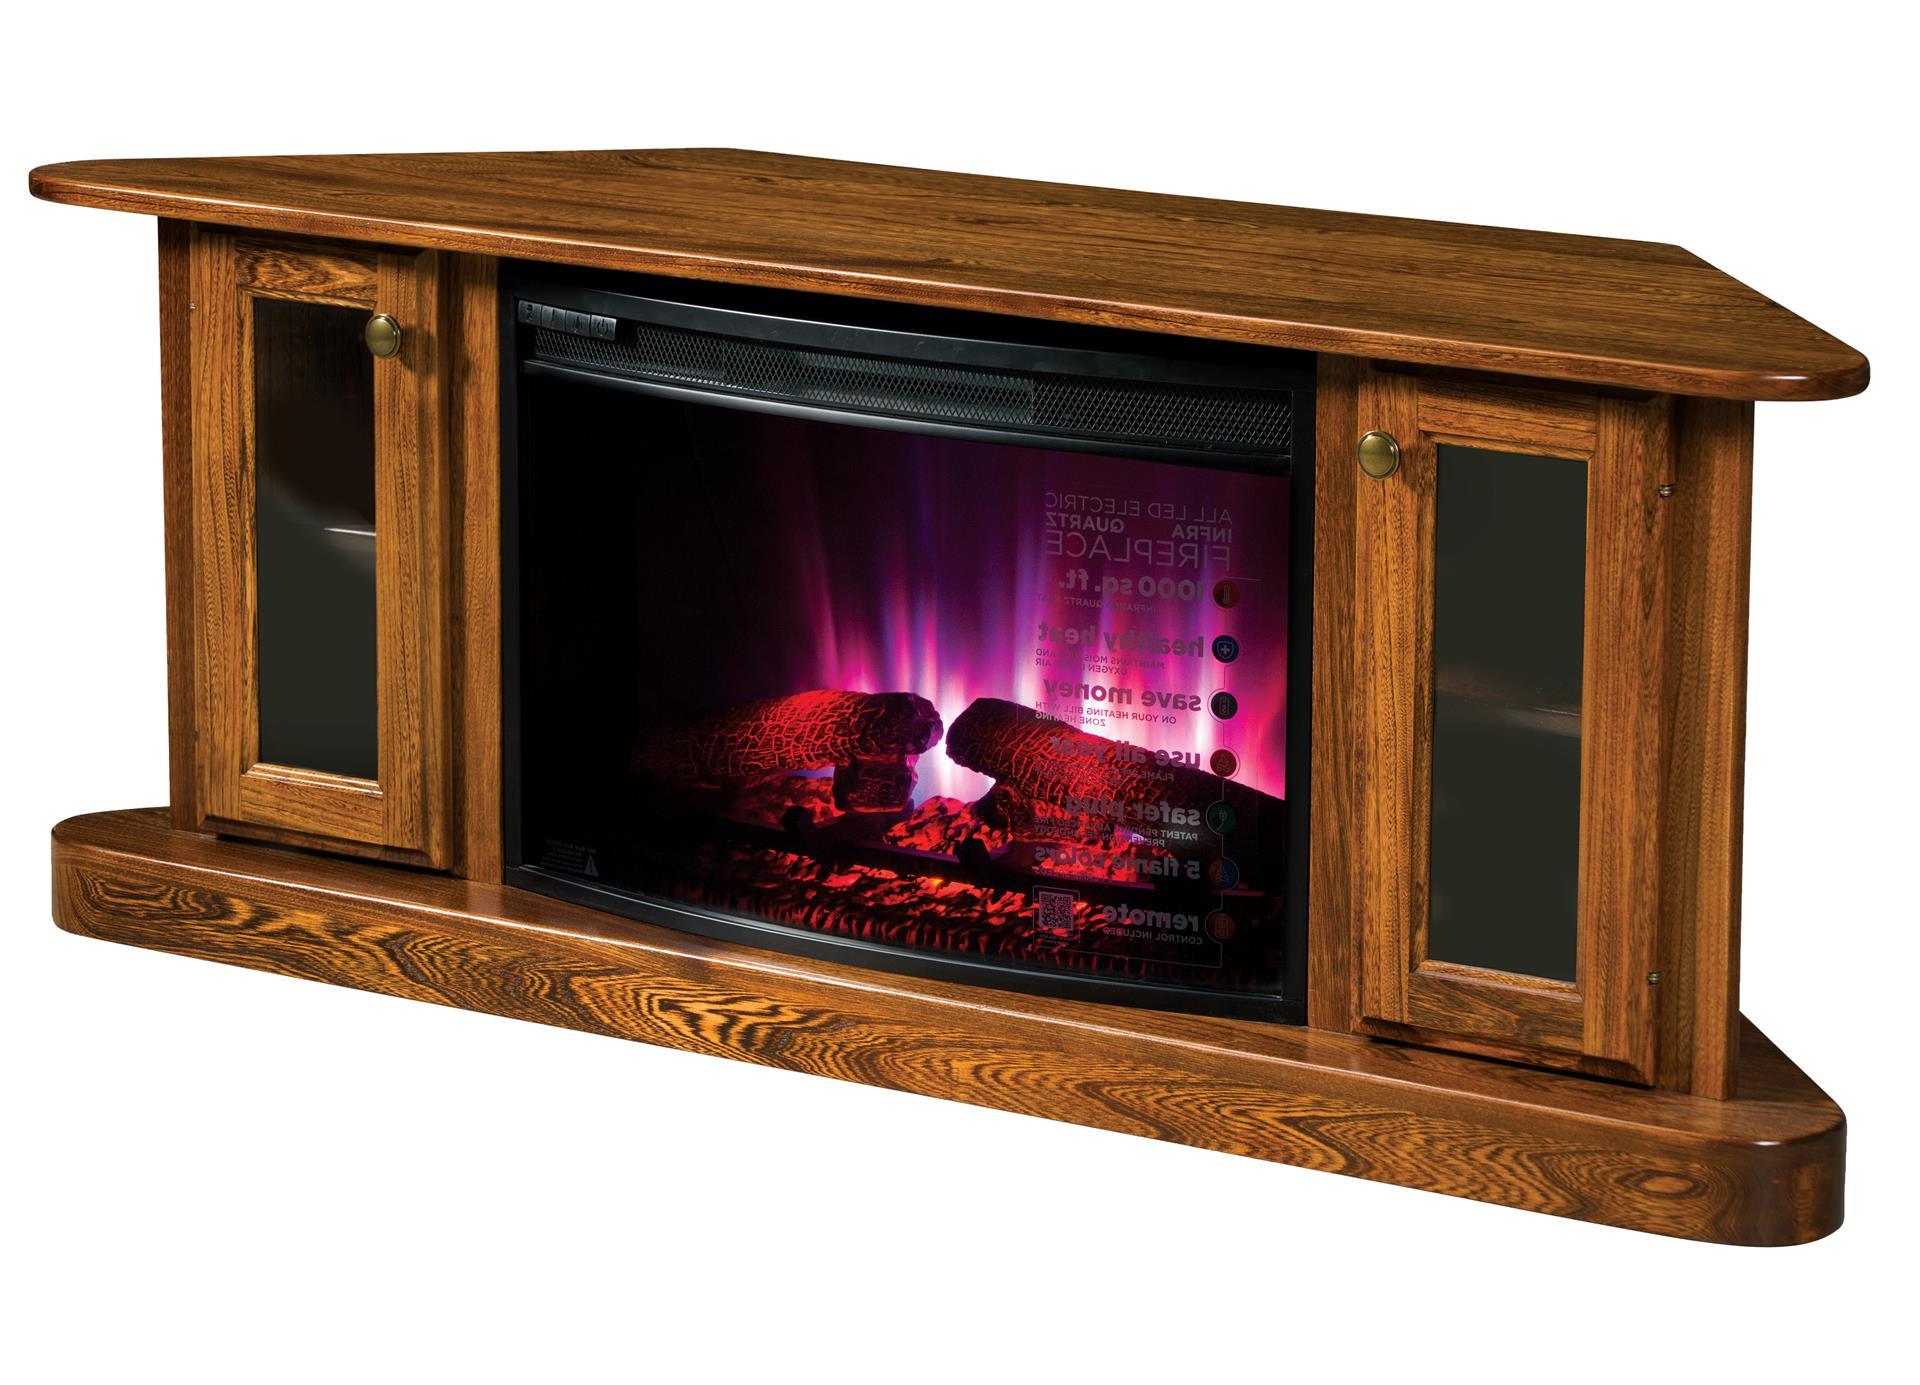 Cascadia Corner Electric Fireplace Tv Stand From With Regard To Lucy Cane Cream Corner Tv Stands (View 12 of 20)